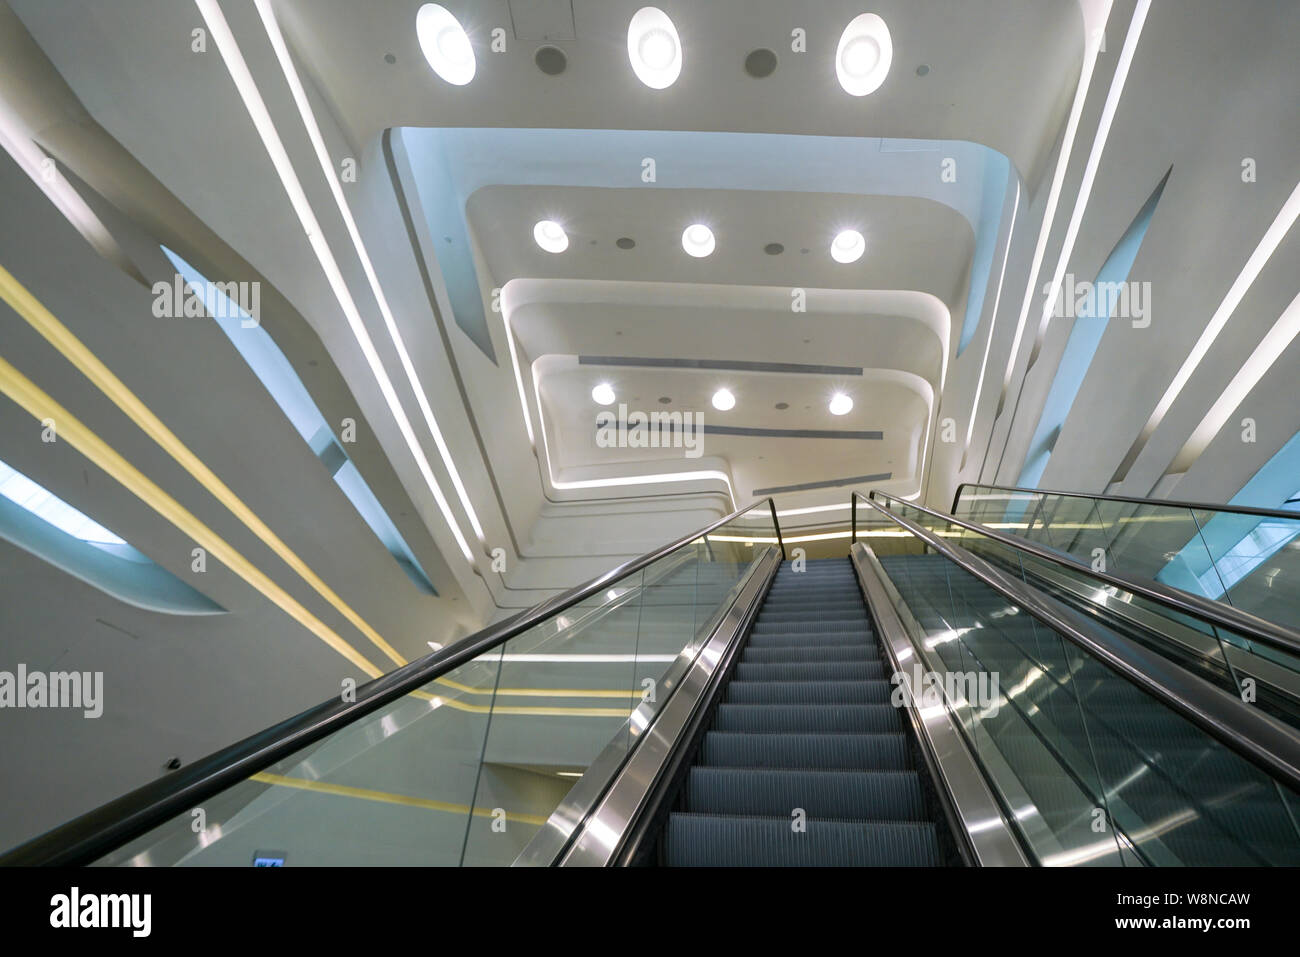 Hong Kong-15th March 2018: The interior of Polyu School of Design Jockey Club Innovation Tower in Hong Kong, a building of the HK Polytechnic Universi Stock Photo